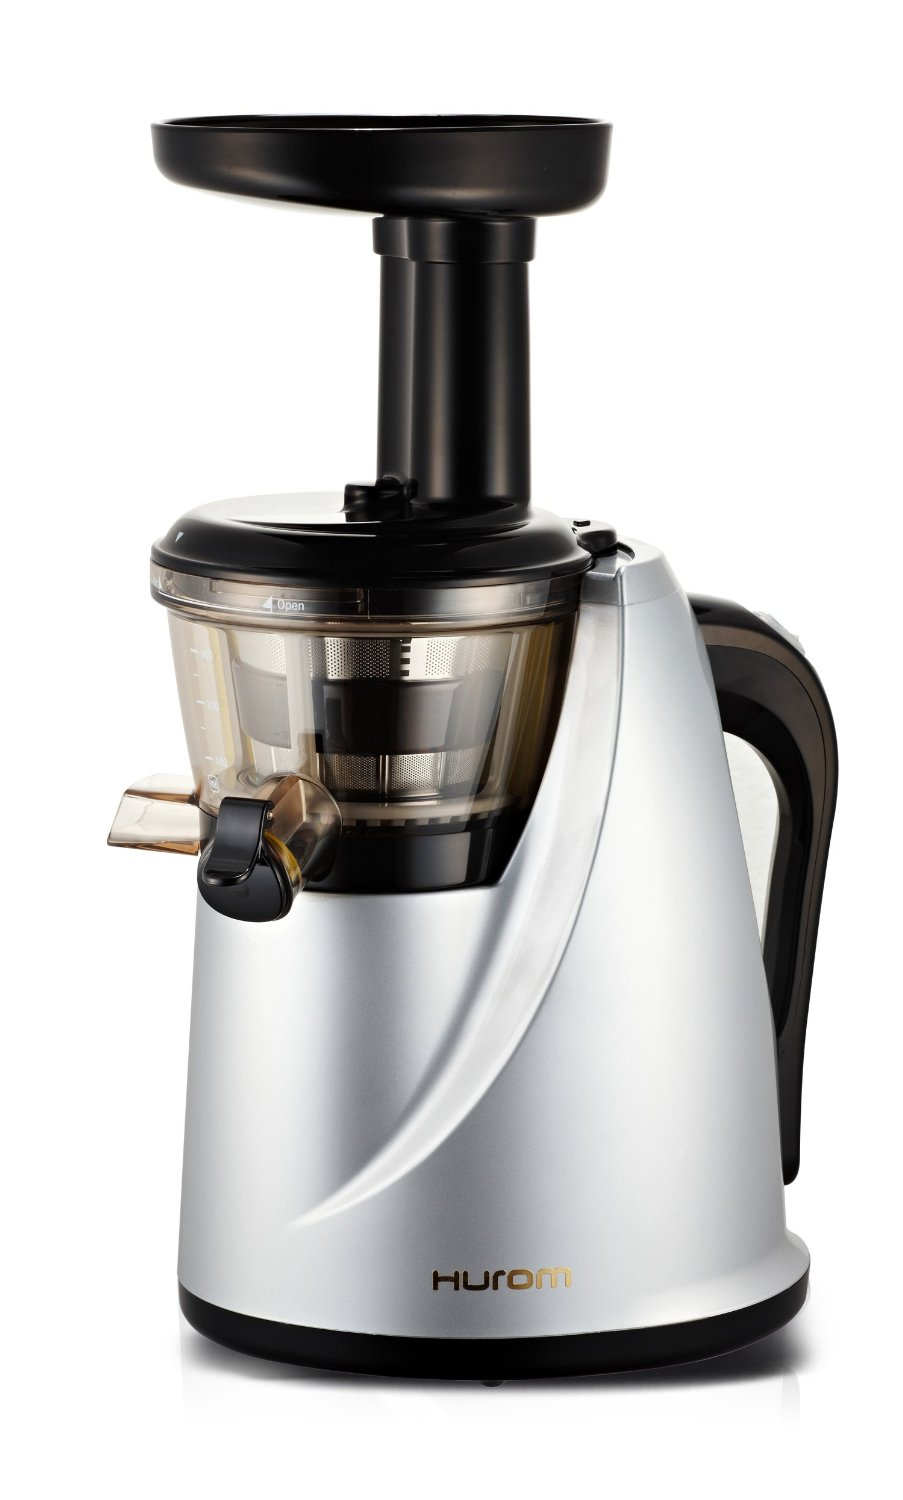 Best Home Slow Juicer : 5 Best Hurom Juicer Reviews UPDATED: 2018 The Home Savant